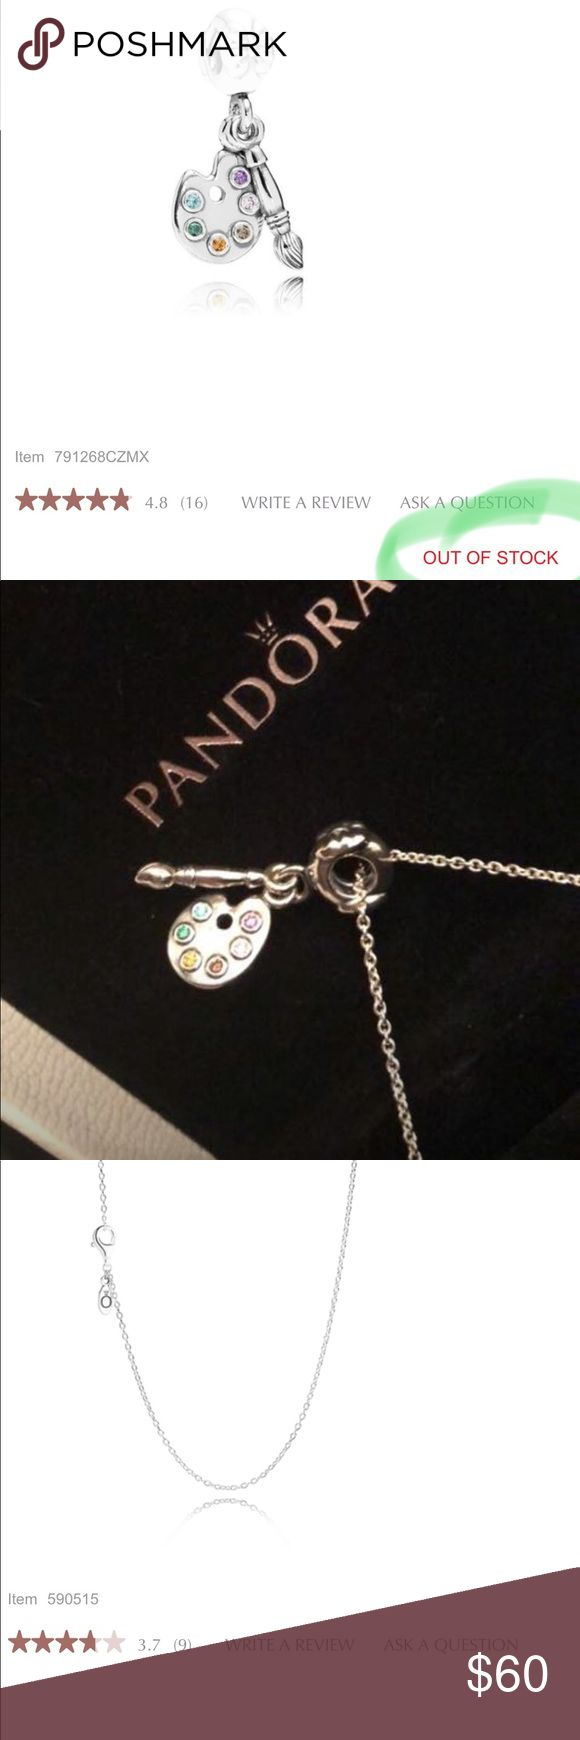 Artist's Charm, CZ w/ sterling silver necklace Authentic PANDORA: Artist's Palette Dangle Charm, Multi-Colored CZ w/ sterling silver necklace chain. NEW in box. This was a gift so I don't have a tag. The chain is worth $30 and the charm has been discontinued so there is limited stock on this unique style. The charm was originally priced at $50. Comes with white pandora box.   BOGO 50% off my whole closet. Pandora Jewelry Necklaces